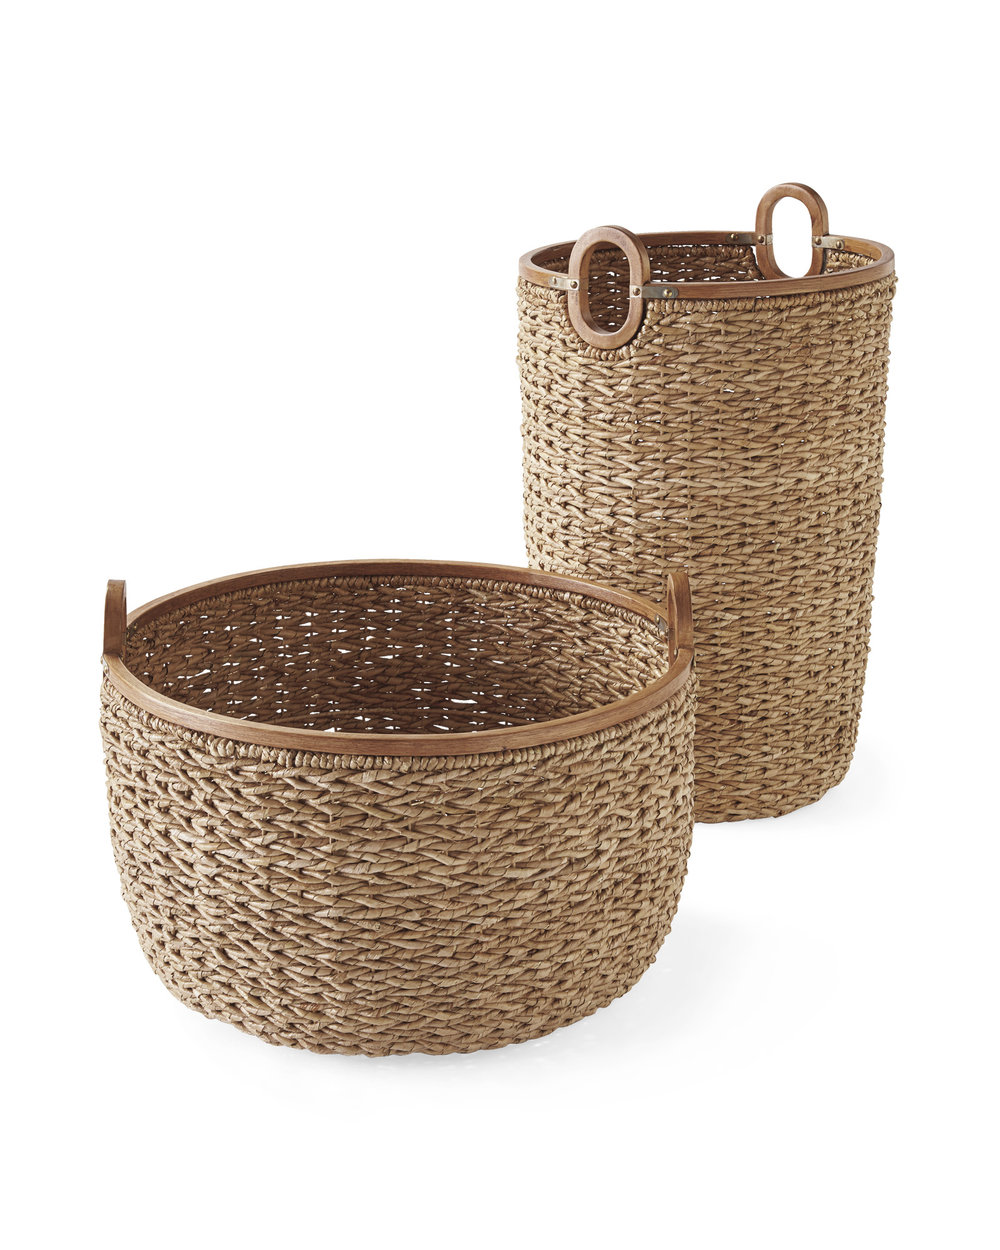 Serena & Lily Seagrass Baskets